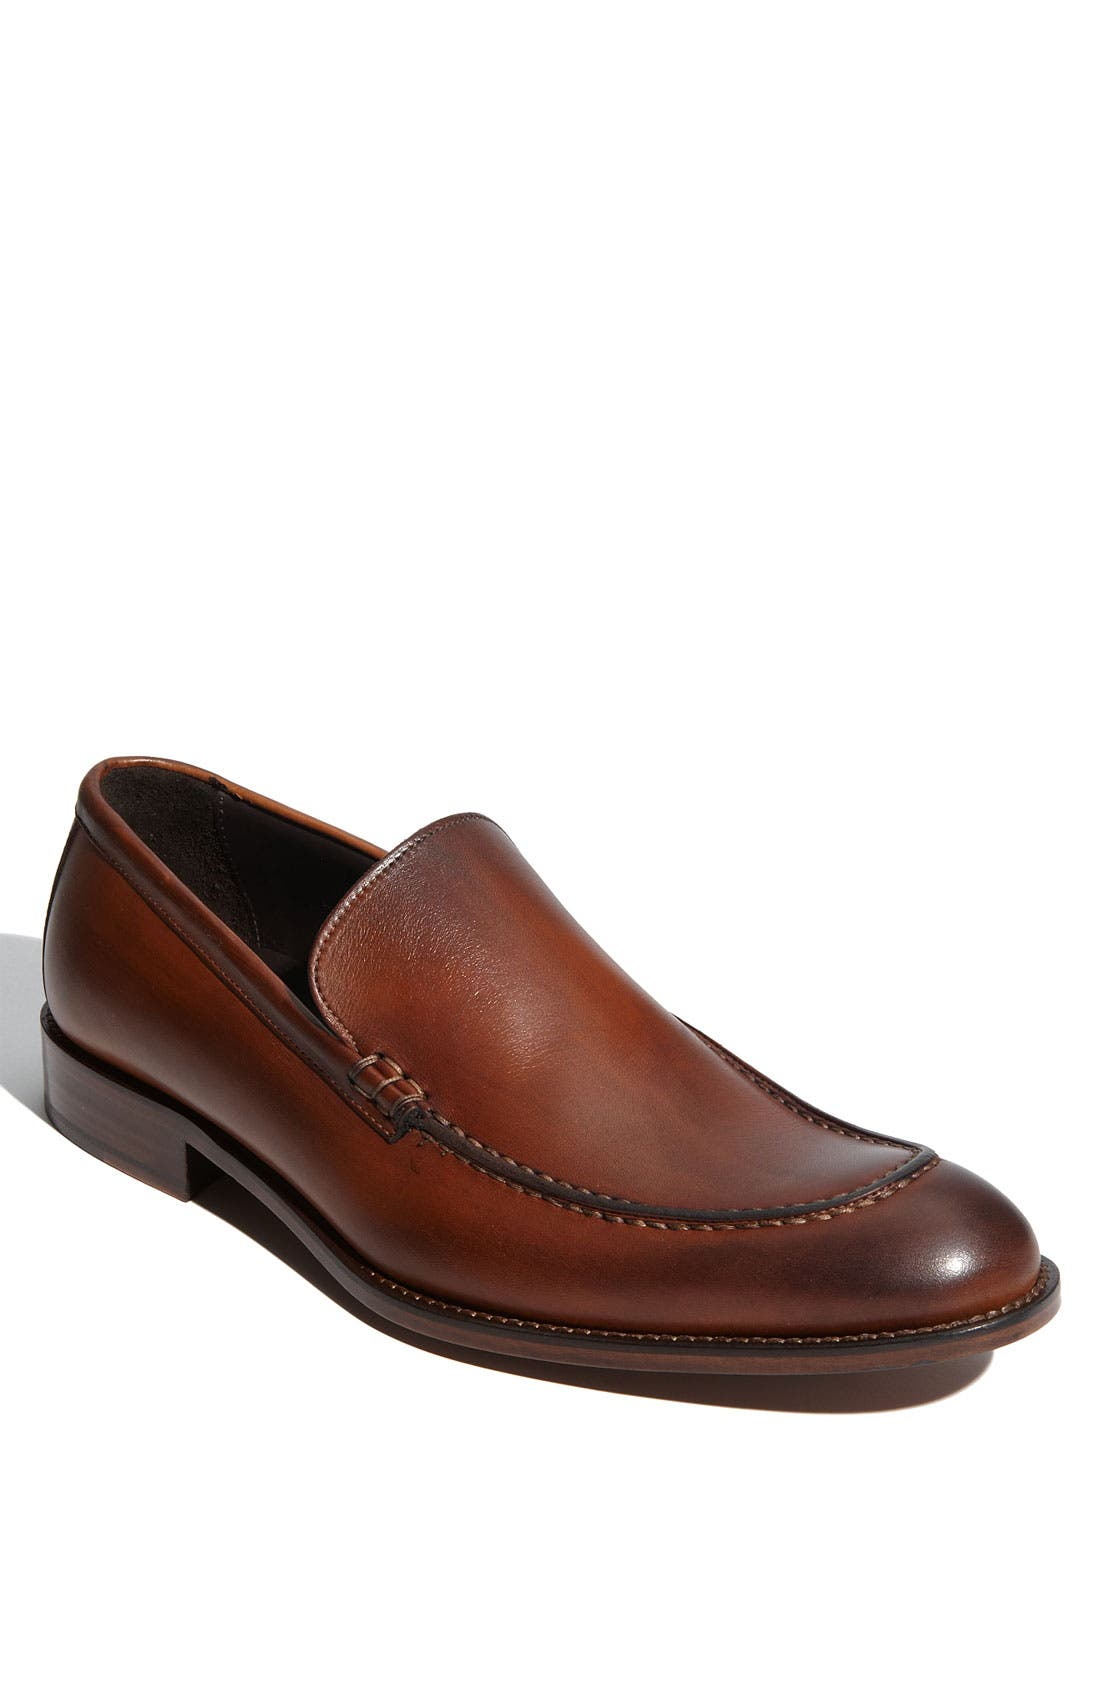 Main Image - To Boot New York 'Oakes' Loafer